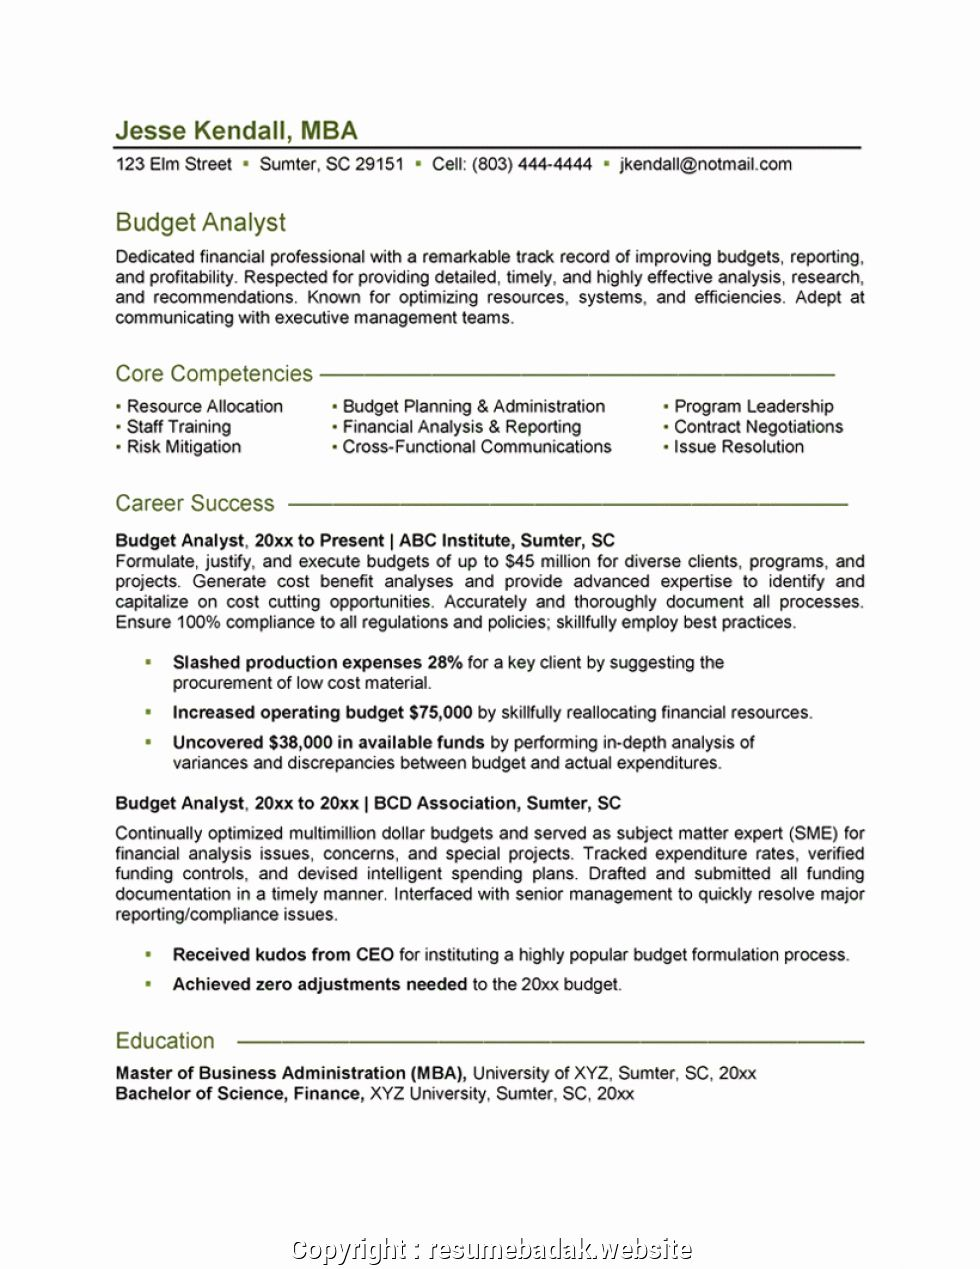 Entry Level Project Coordinator Resume Lovely Simple It Manager Bud Resume Entry Level Project Resume Examples Project Manager Resume Job Resume Samples